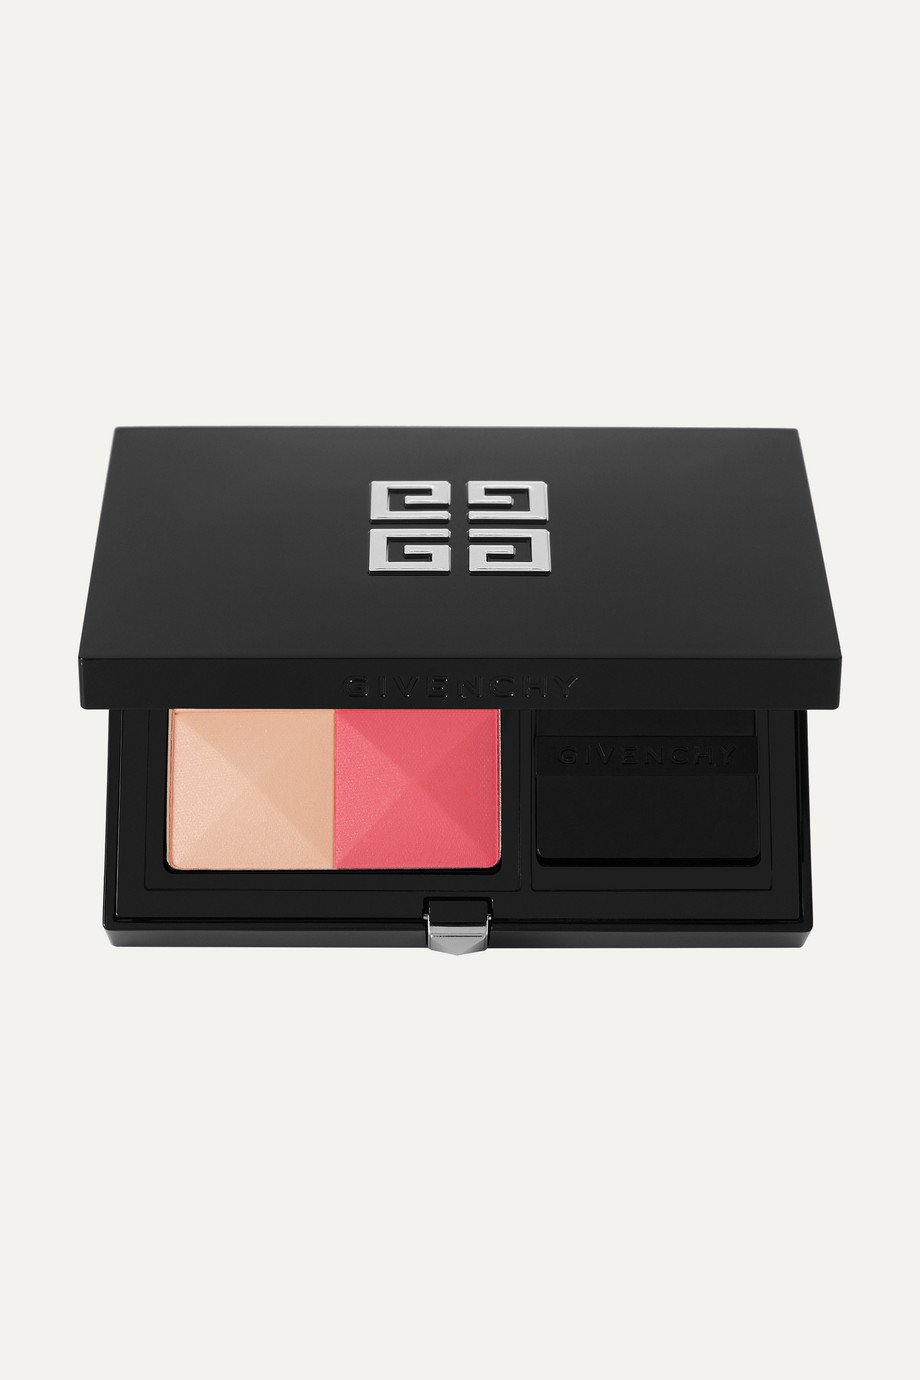 Givenchy Beauty Prisme Powder Blush Duo -  Passion 01